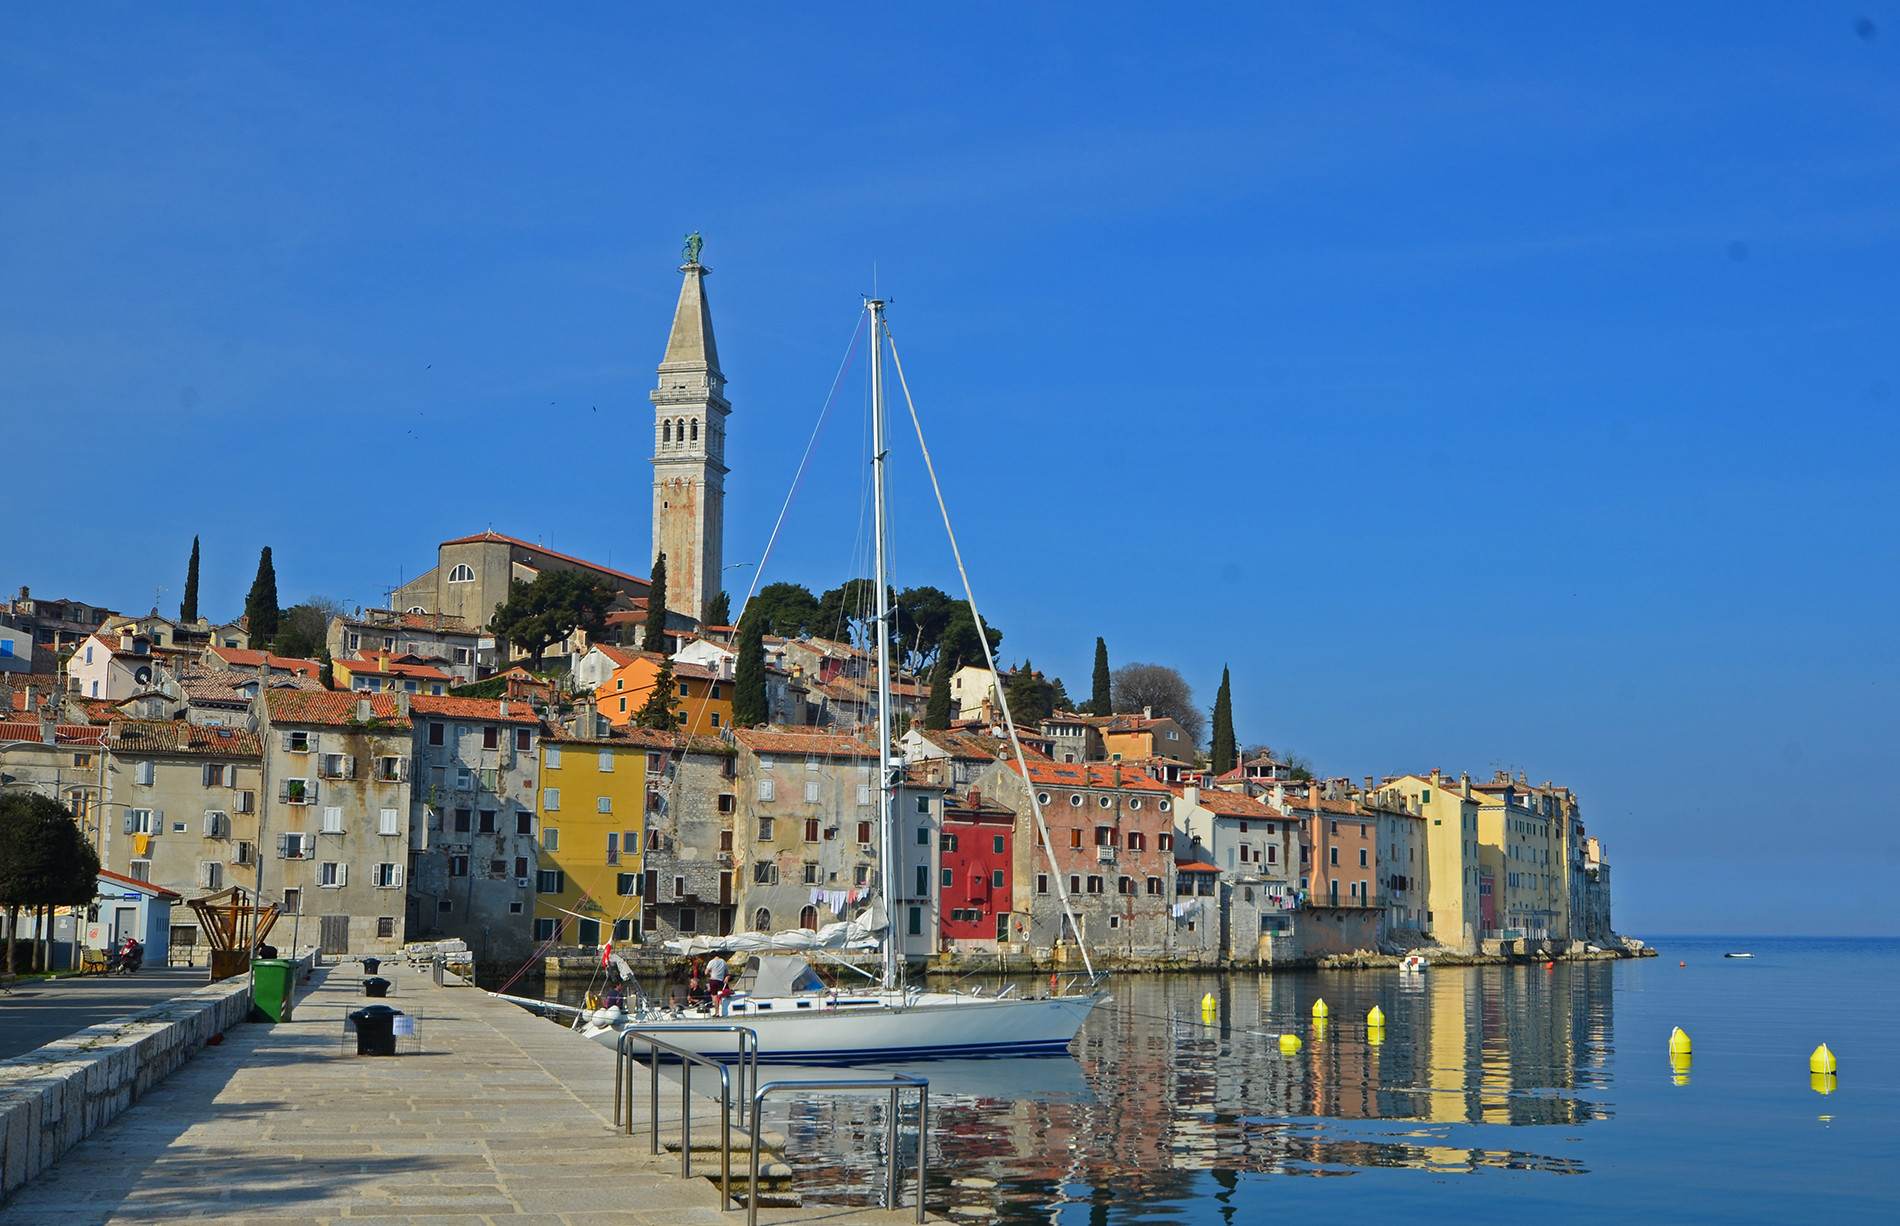 Apartment in Old Town of Rovinj - Trg Kralja Epulona 1, Rovinj - Croatia, Casa Epulona  - Apartmanica